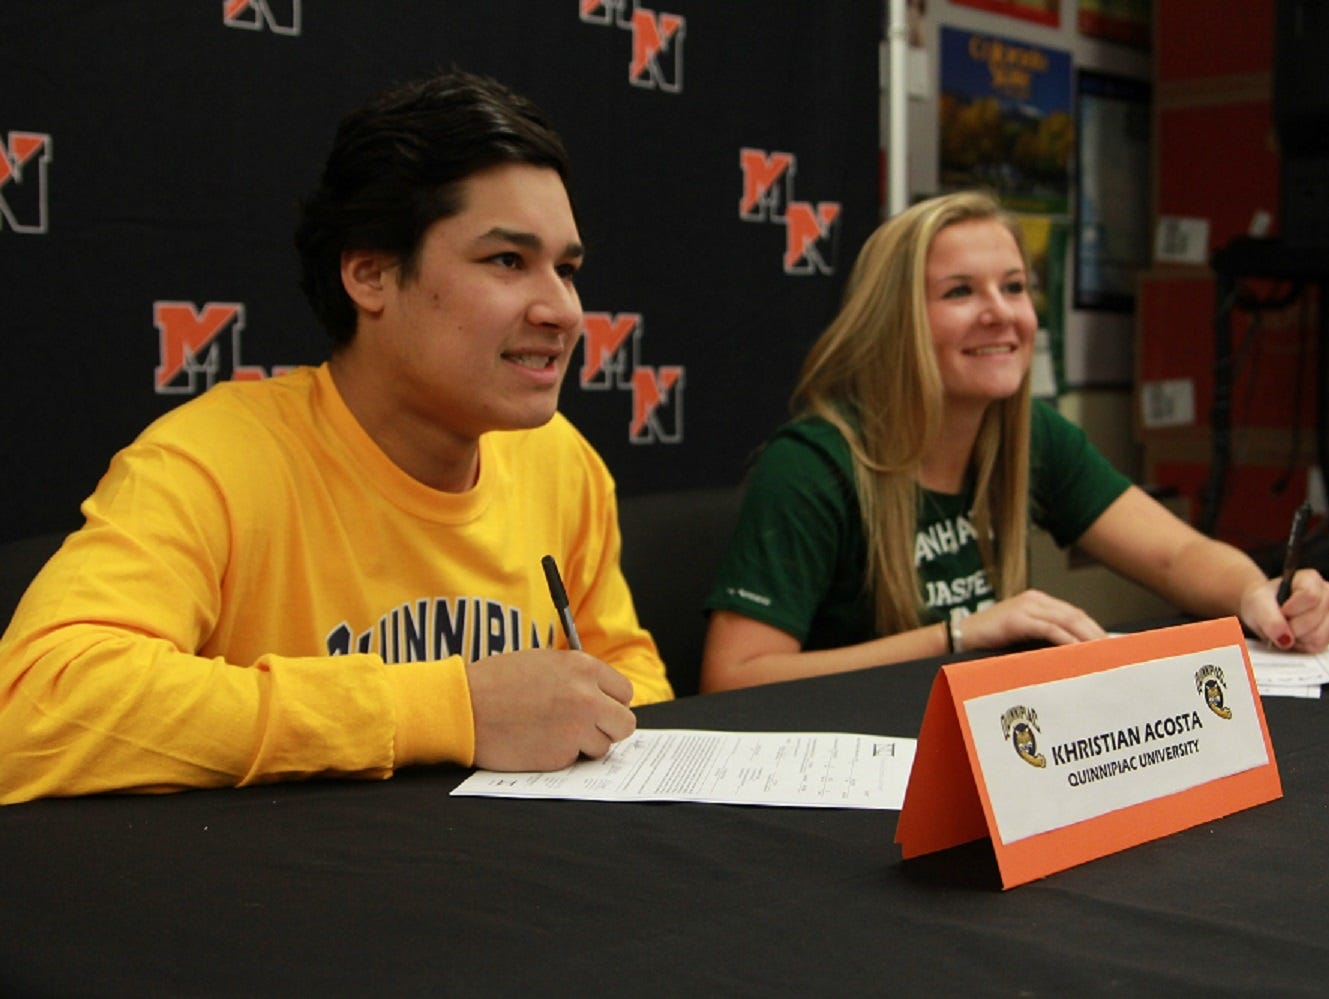 Khristina Acosta (left) and Christine Gebhardt (right) sign National Letters of Intent at Middletown North.